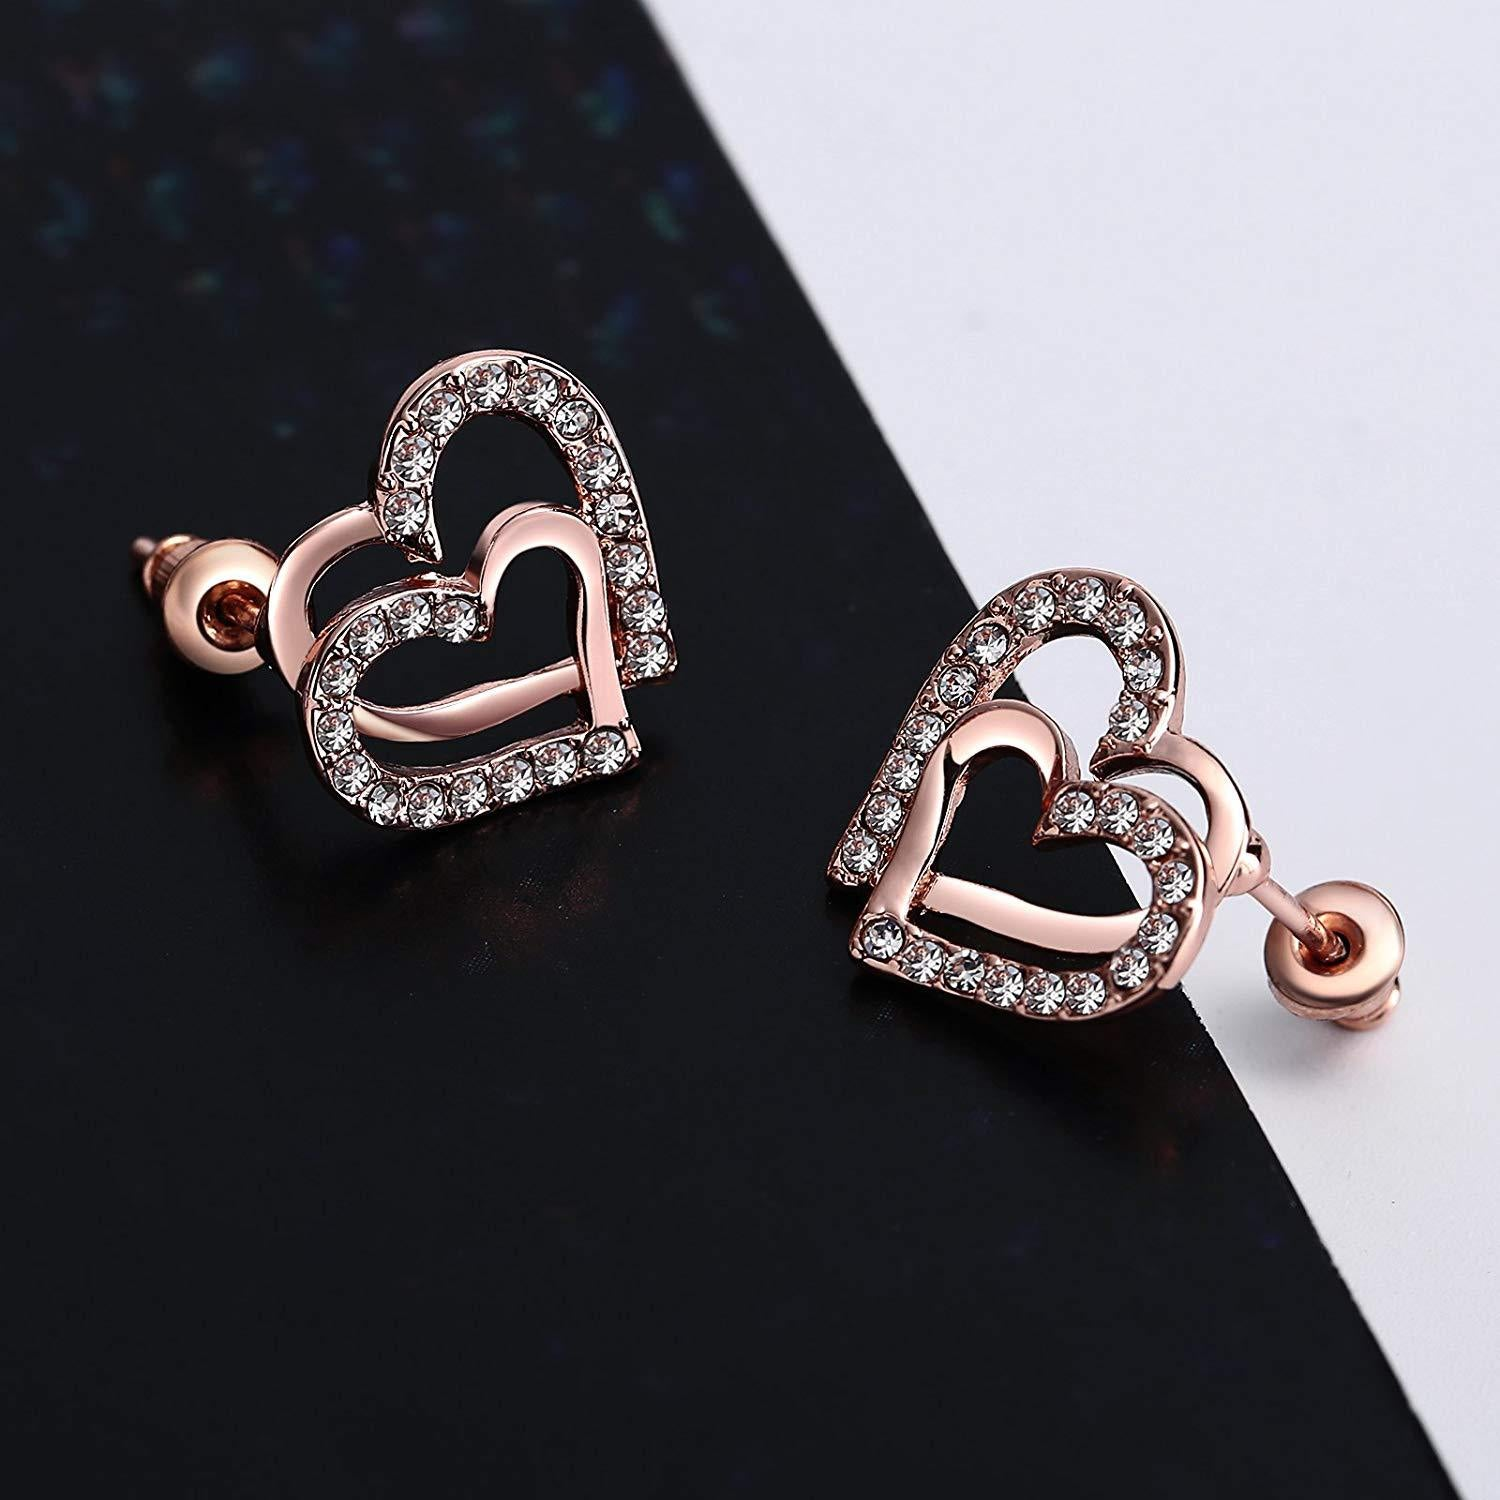 S925 Sterling Silver Korean Version Of The Simple Personality Double Love Earrings Jewelry Cross-Border Exclusive